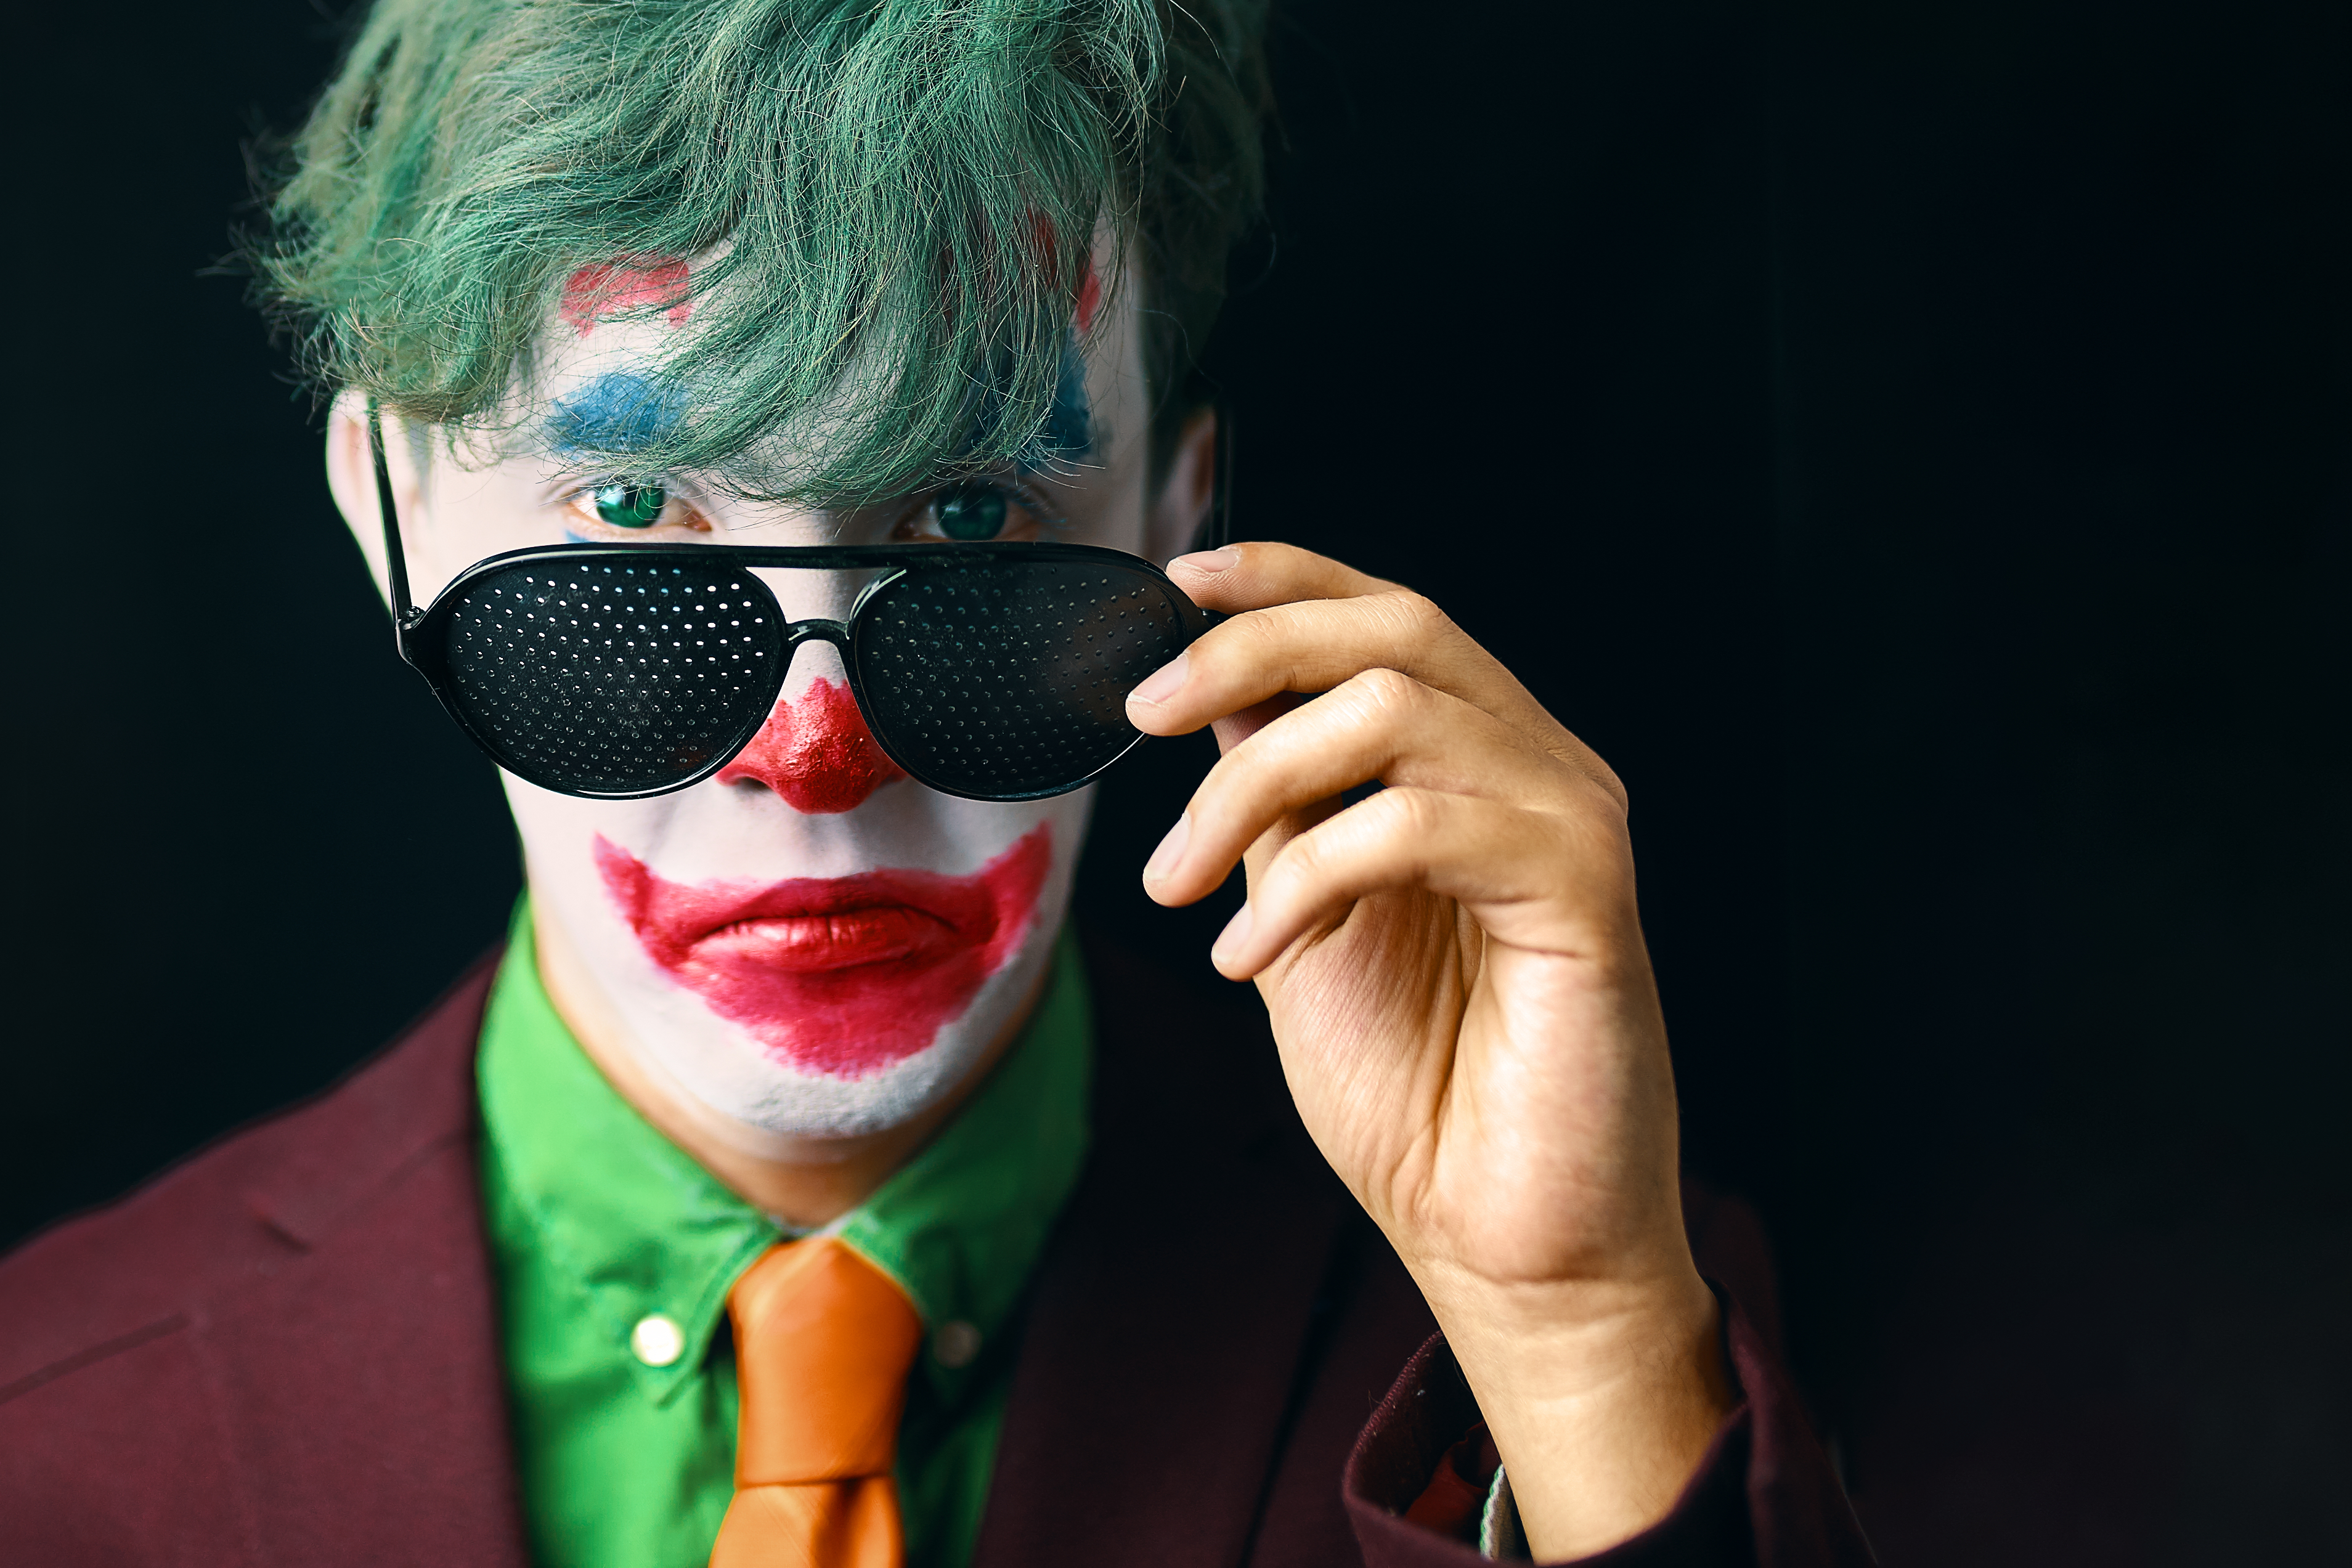 Why So Serious: Joker's Stash Asking $100 per Card for Fresh Card Drop